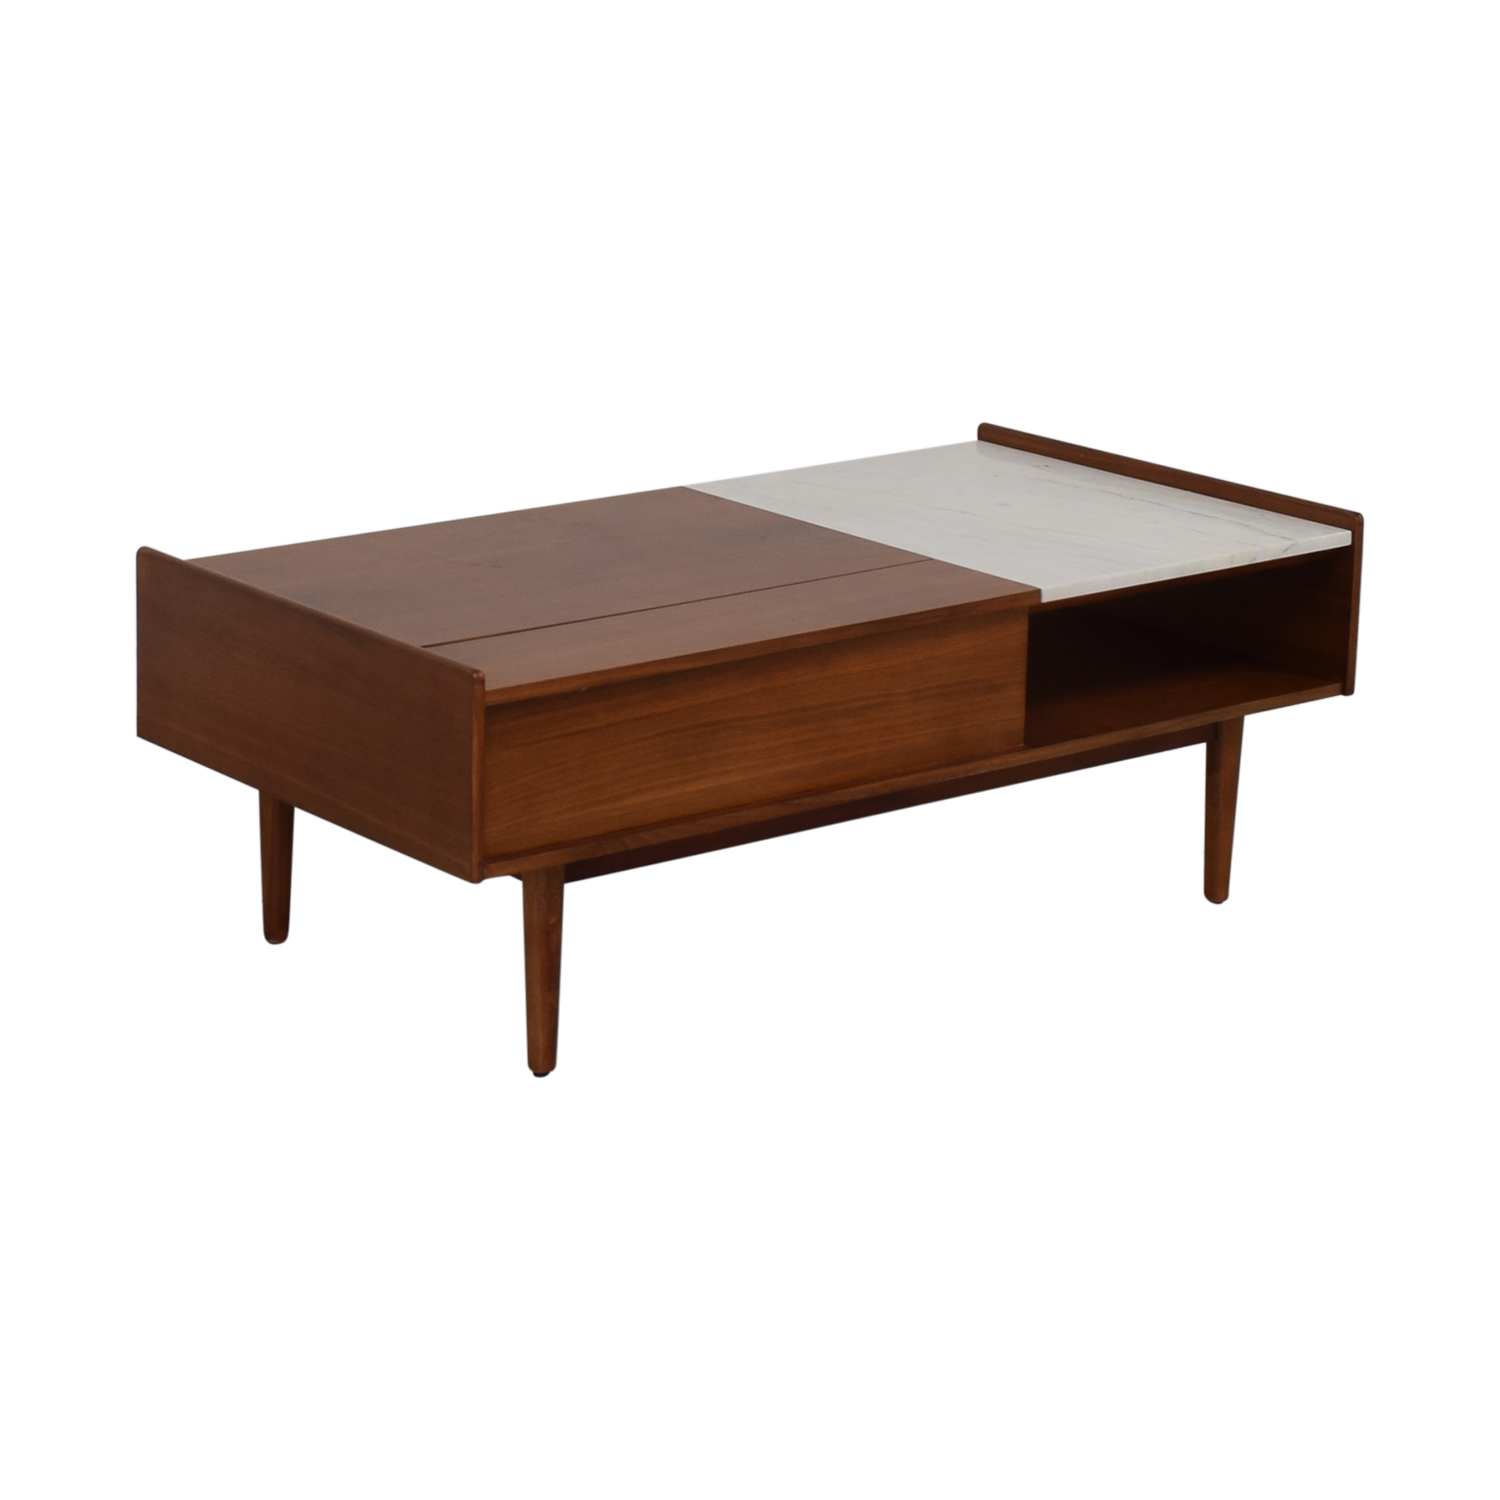 West Elm West Elm Mid Century Pop-Up Coffee Table coupon